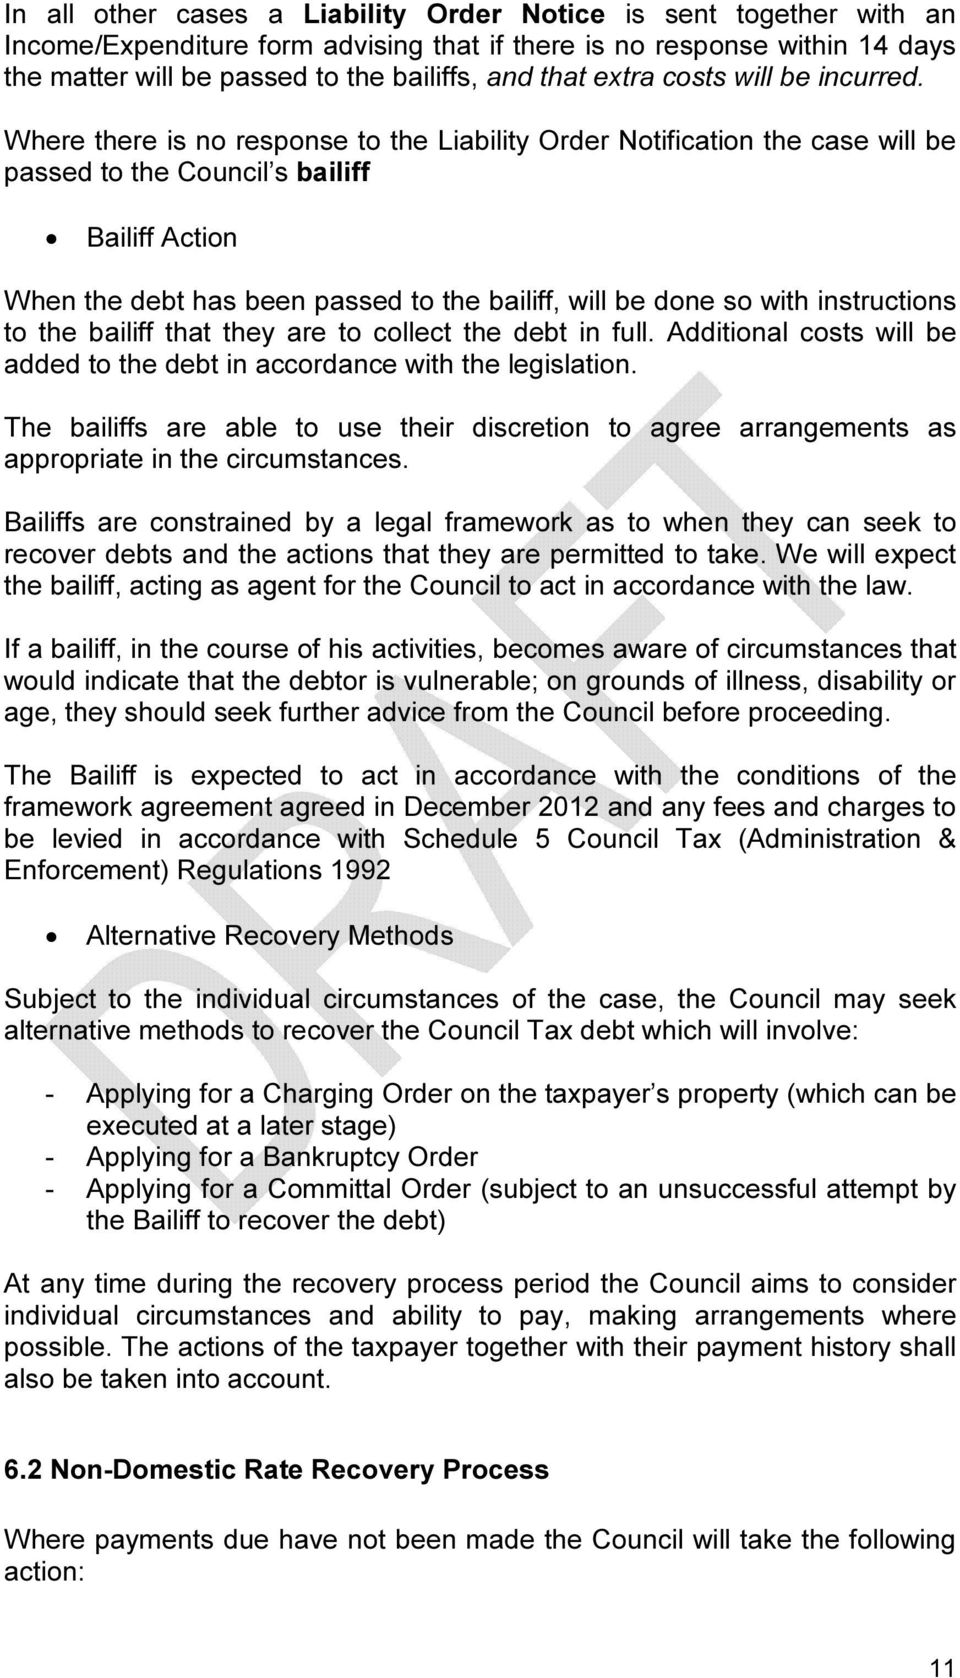 Where there is no response to the Liability Order Notification the case will be passed to the Council s bailiff Bailiff Action When the debt has been passed to the bailiff, will be done so with